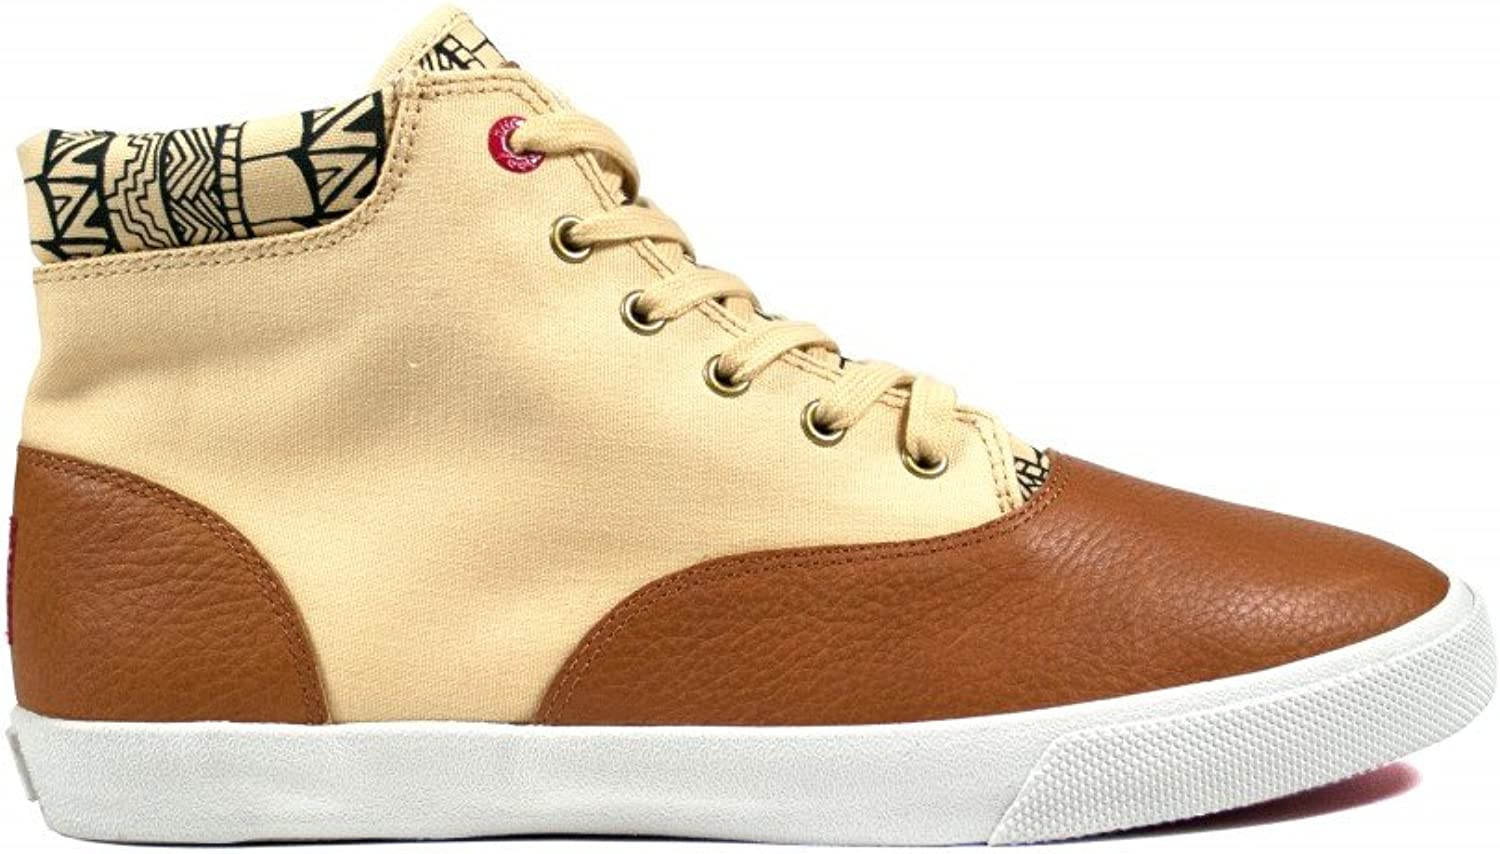 Pindou mid Bucketfeet Womens Canvas Lace-Up 8 Brown Black